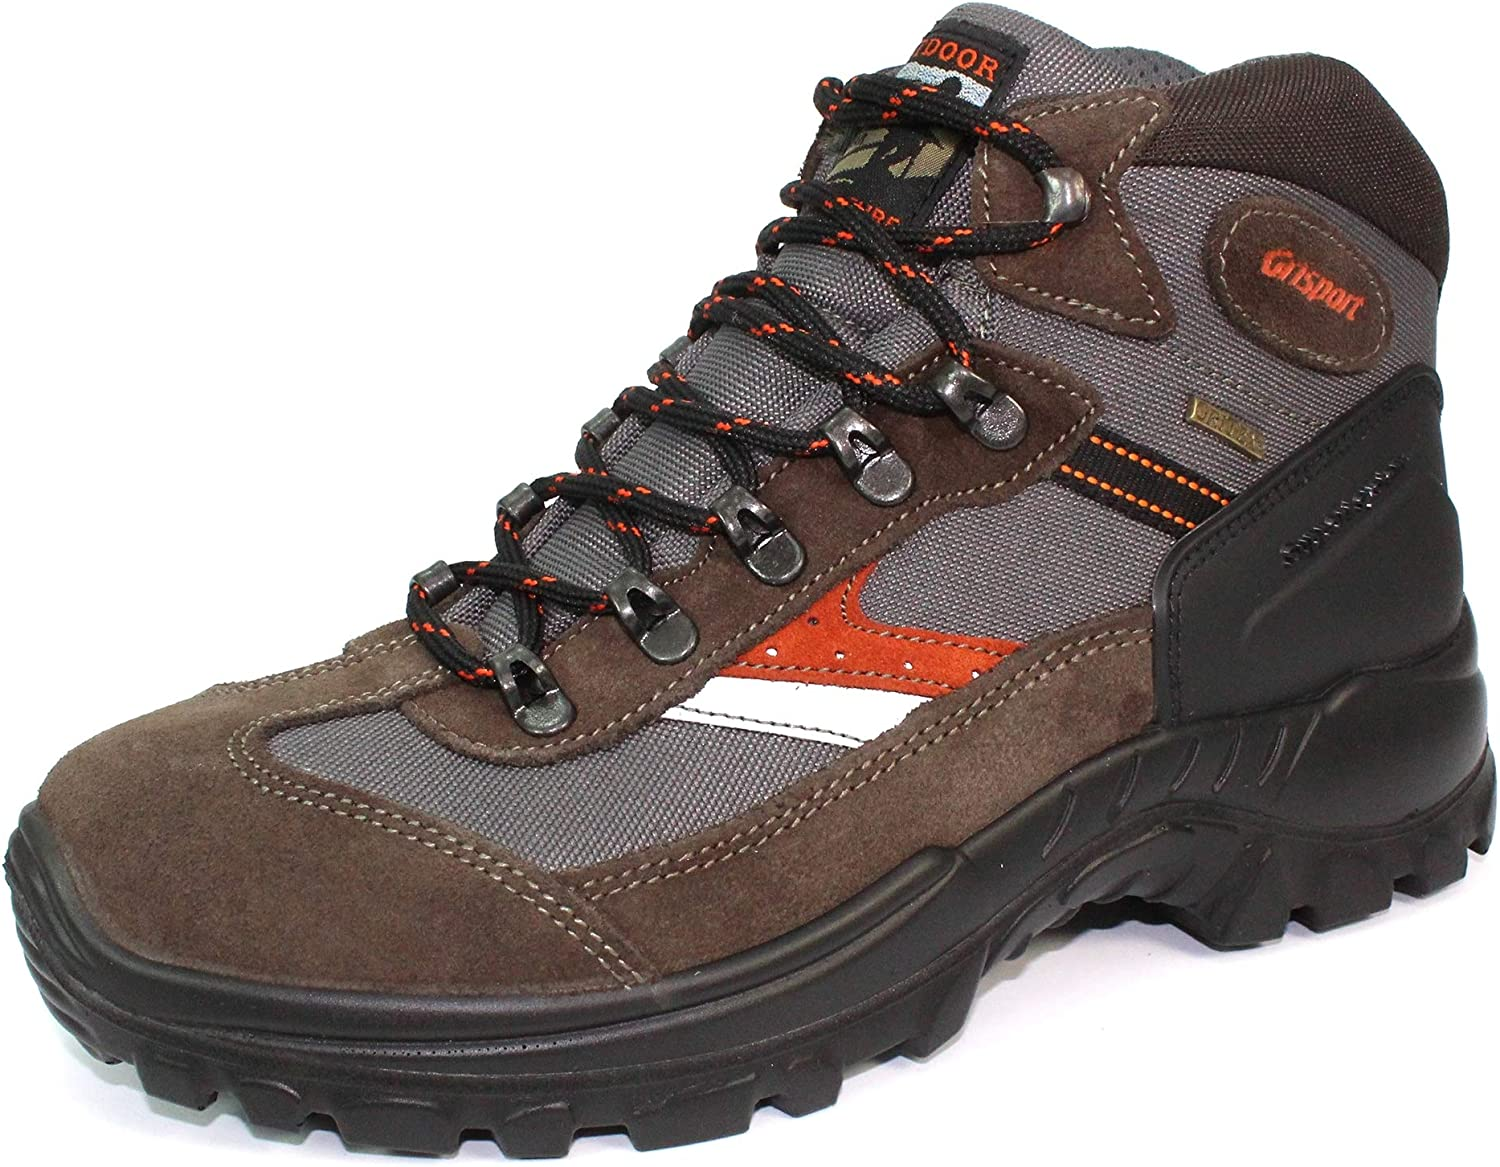 greyport Forest Light Lowland Walking Boots